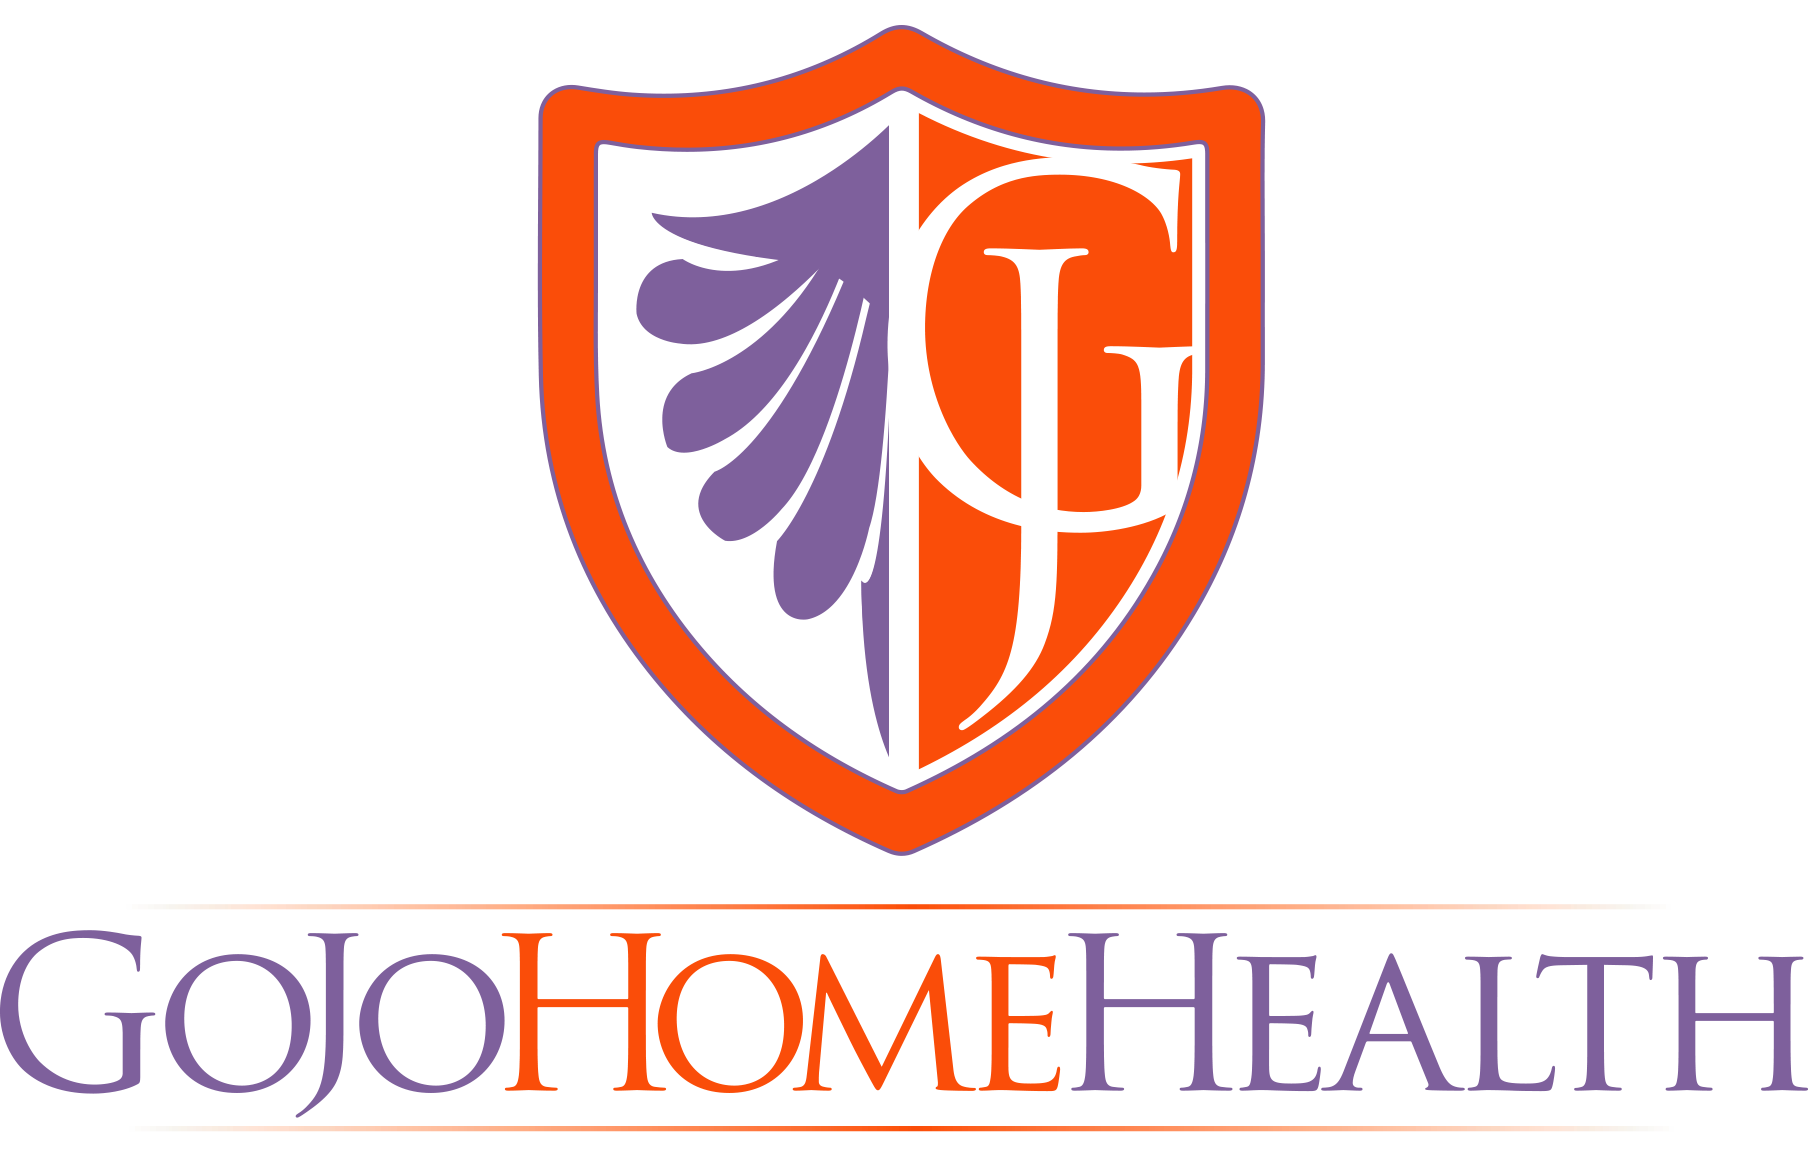 Home Health Care of North Central Texas